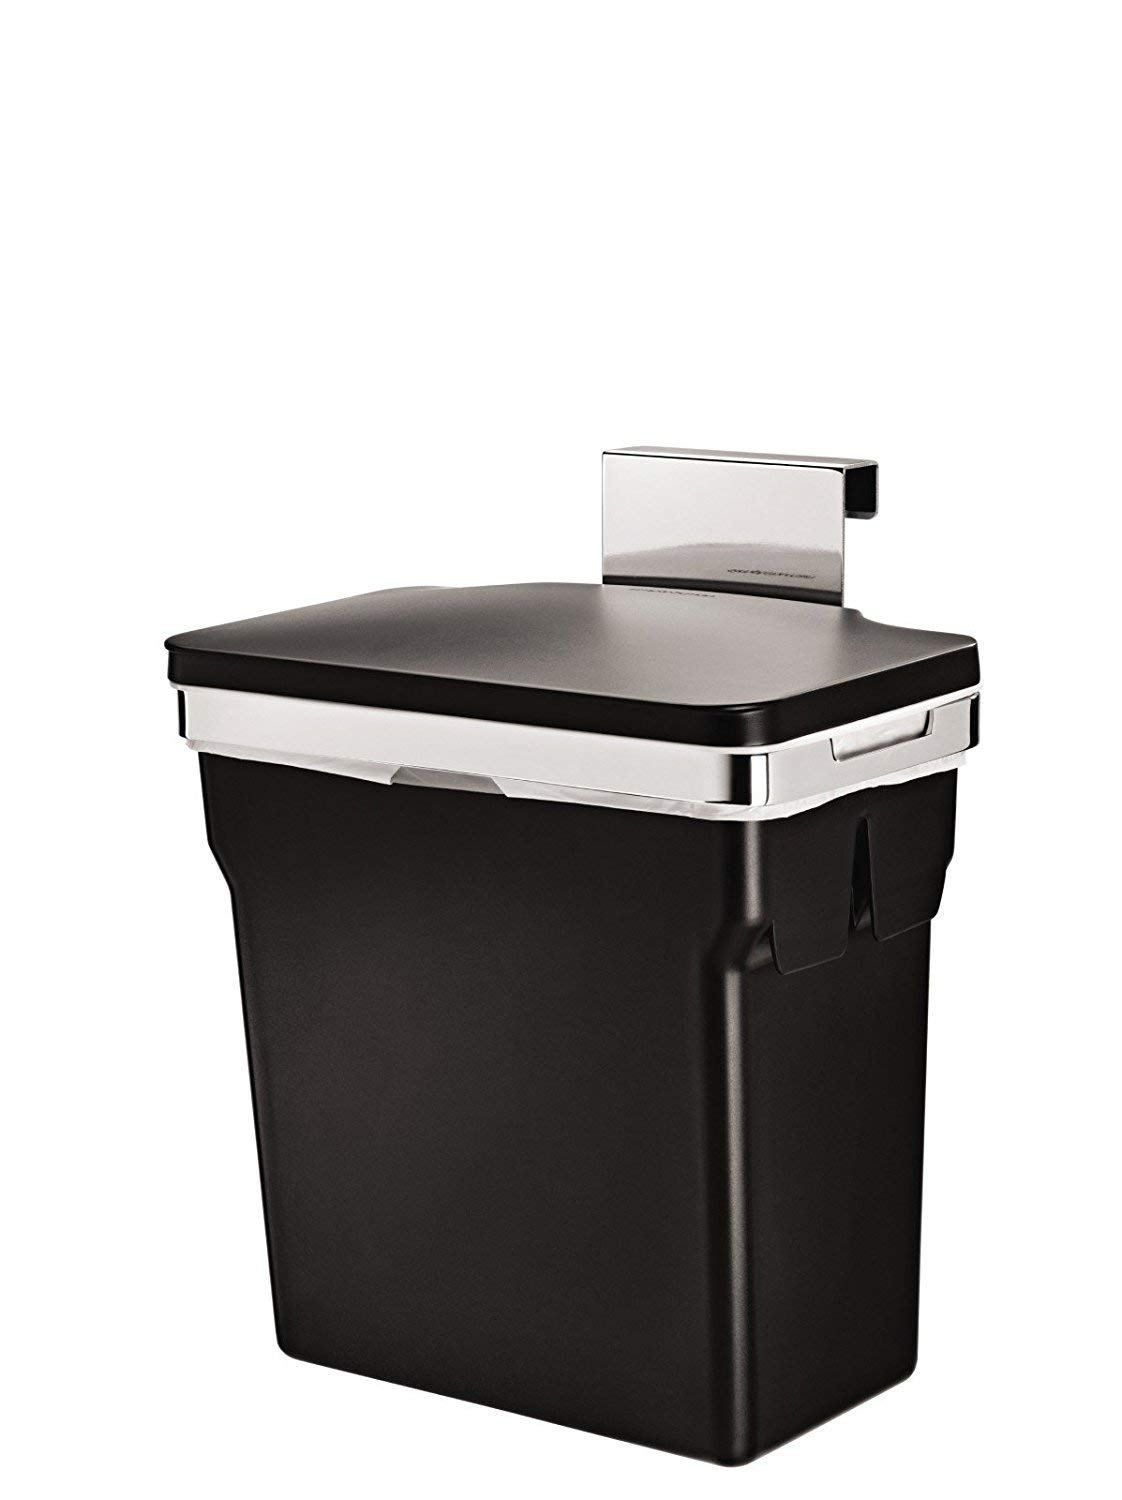 Top 8 Best Wall Mounted Trash Can Reviews Best Garbage Disposal Units Kitchen Trash Cans Simplehuman Kitchen Waste Bin